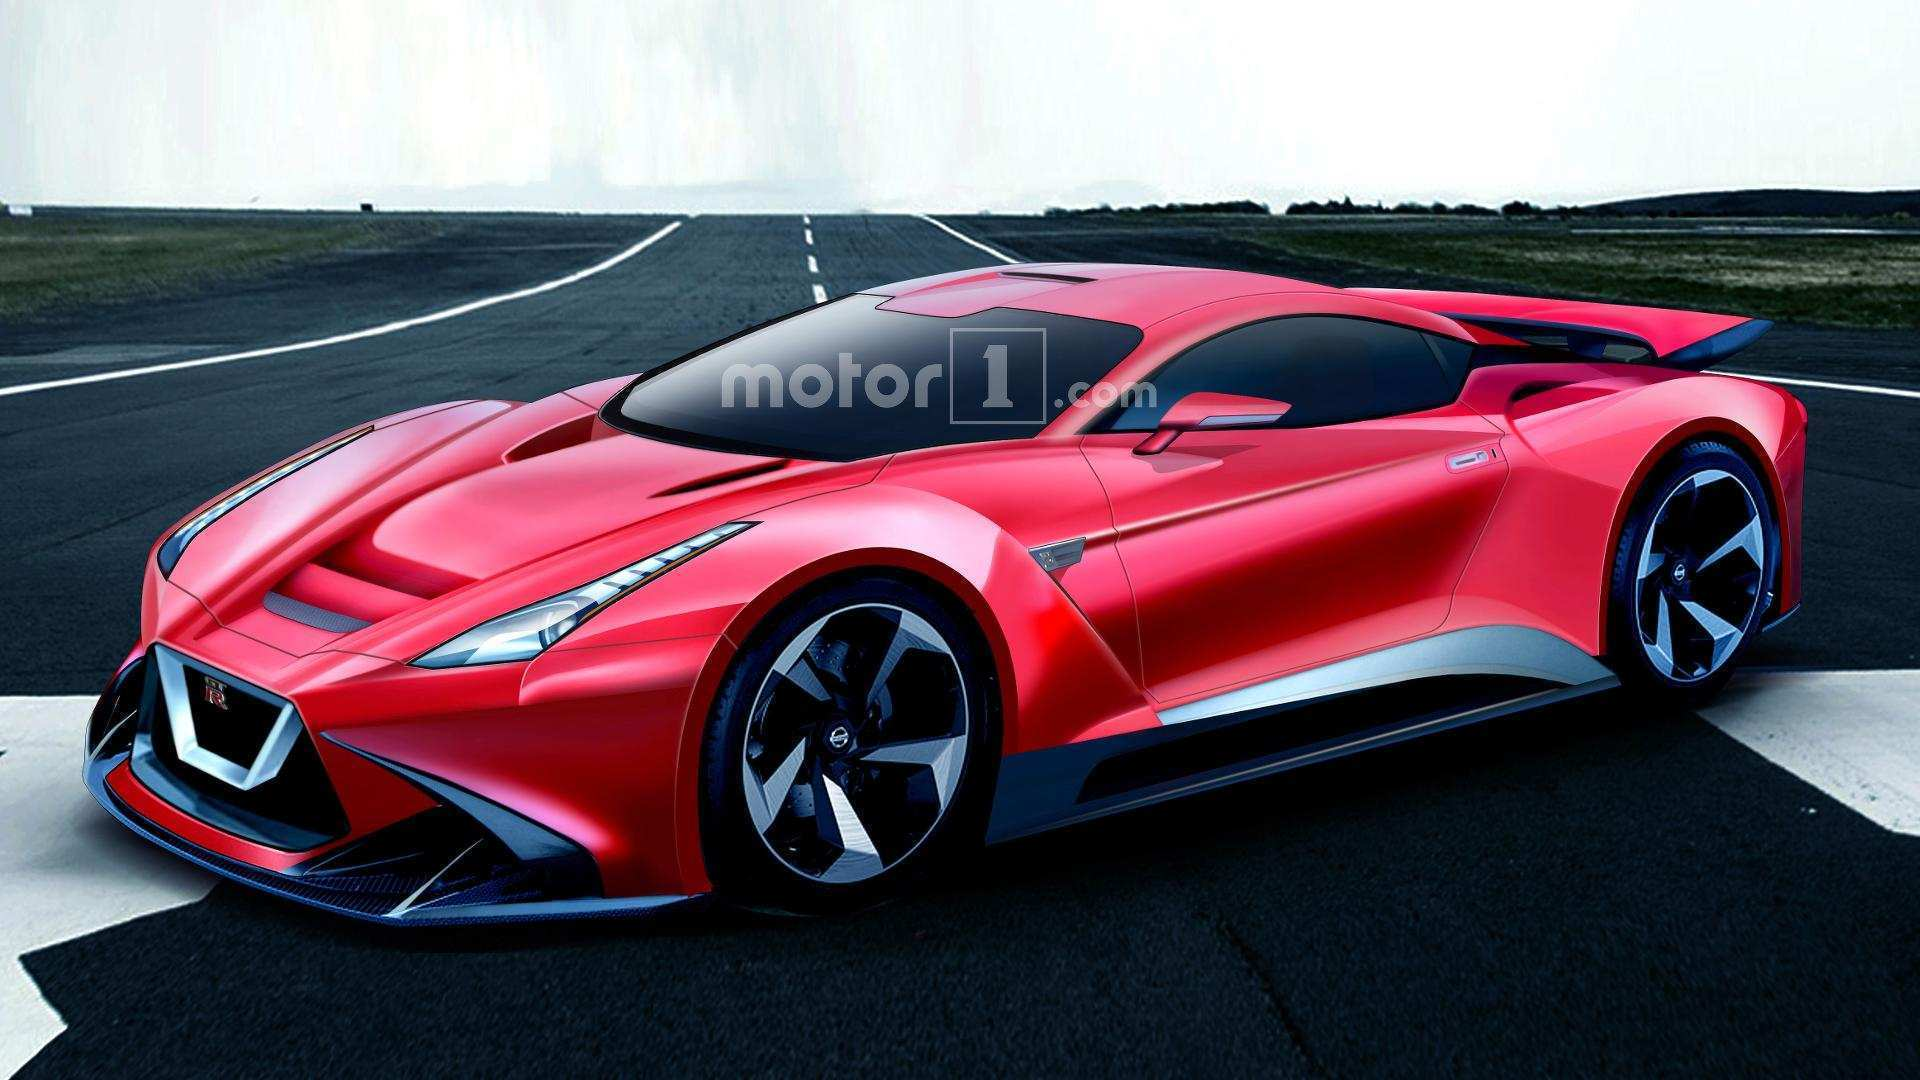 56 Concept of Nissan 2020 Sports Car New Concept for Nissan 2020 Sports Car